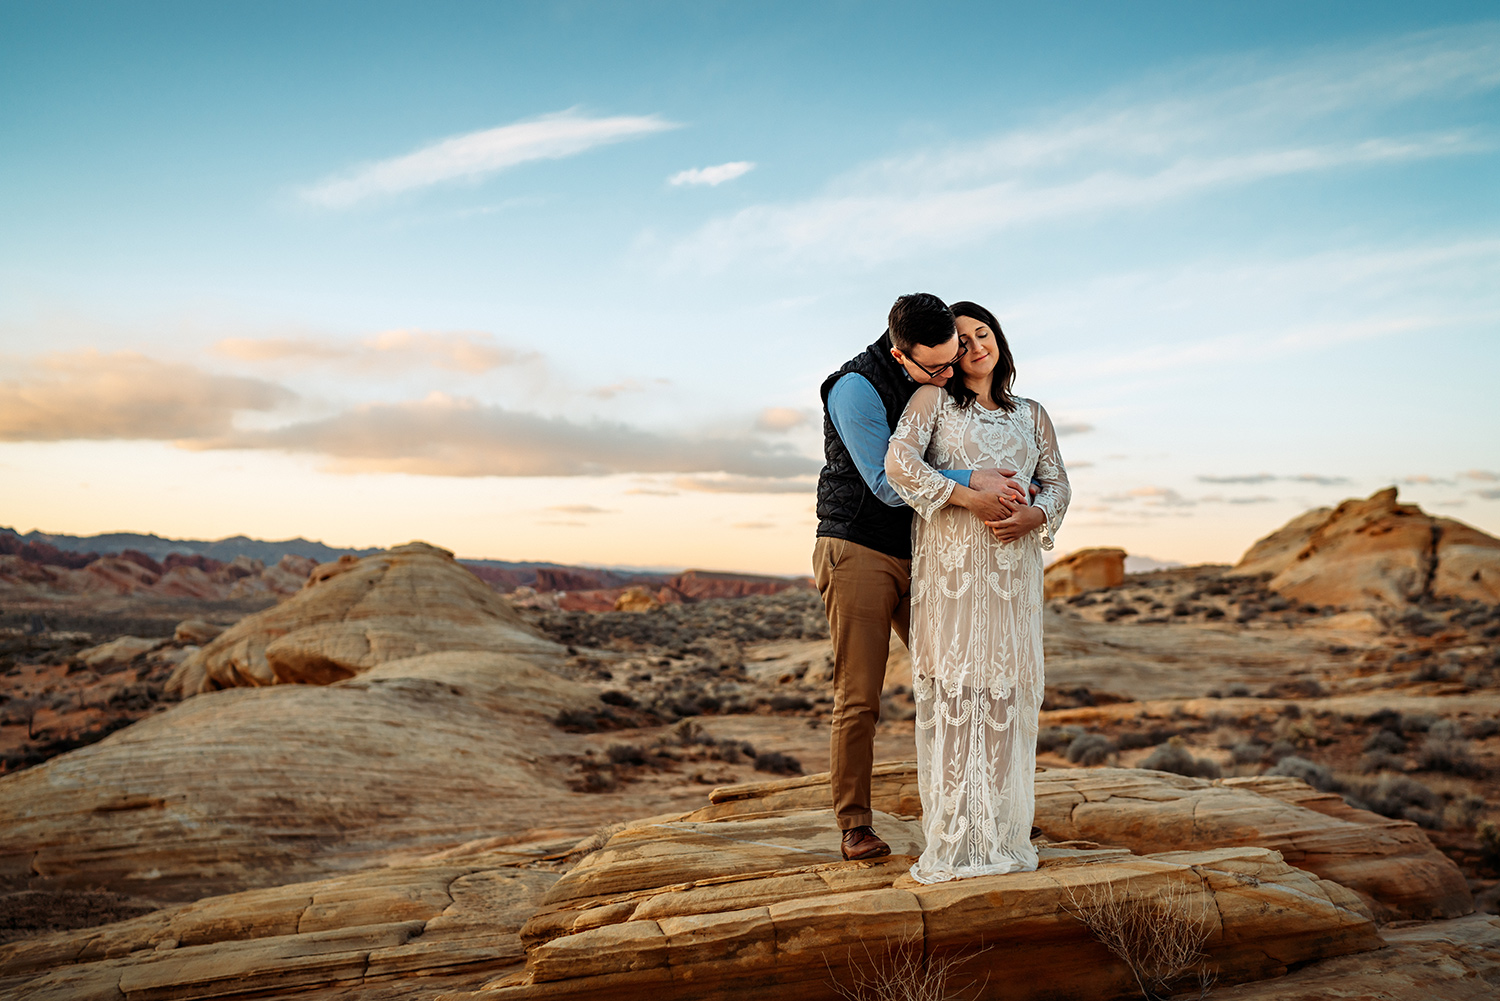 local-las-vegas-photography-pricing-maternity.jpg